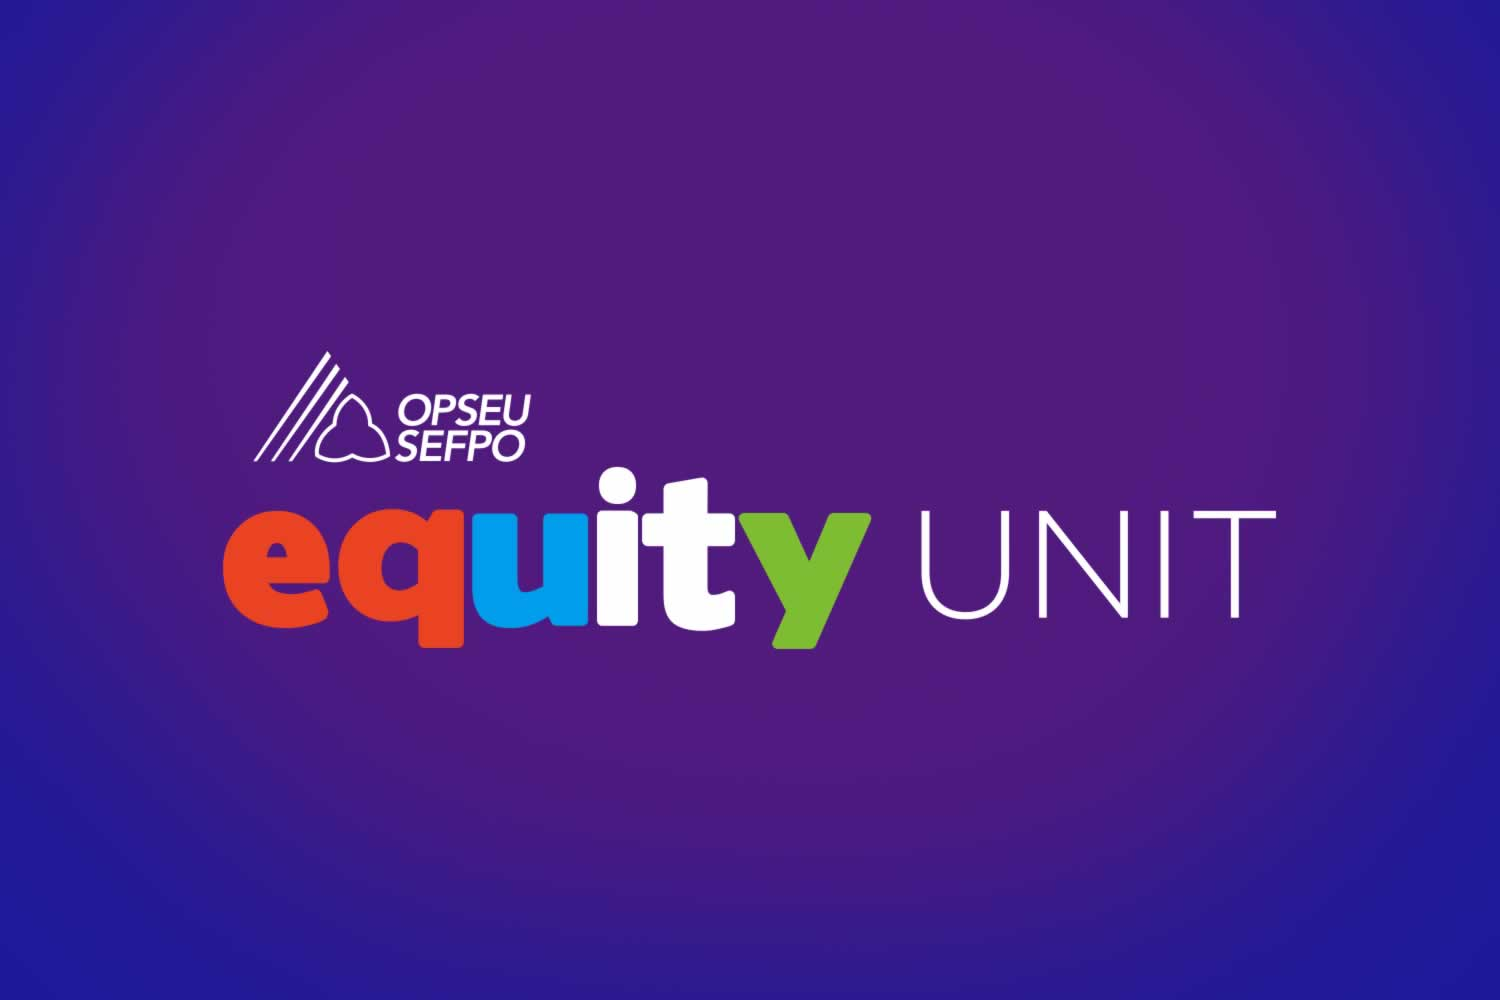 OPSEU Equity Unit